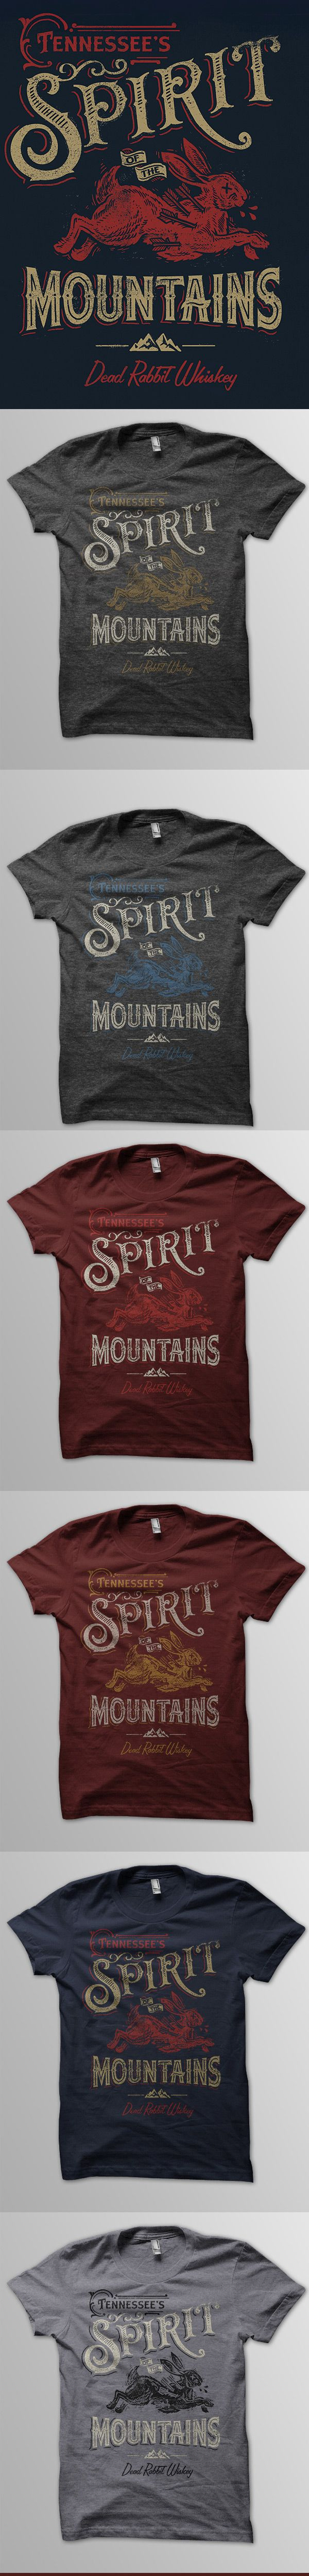 Design t shirt zazzle - Tennessee S Spirit Of The Mountains By Derrick Castle Typography Designcool Shirt Designsvintage